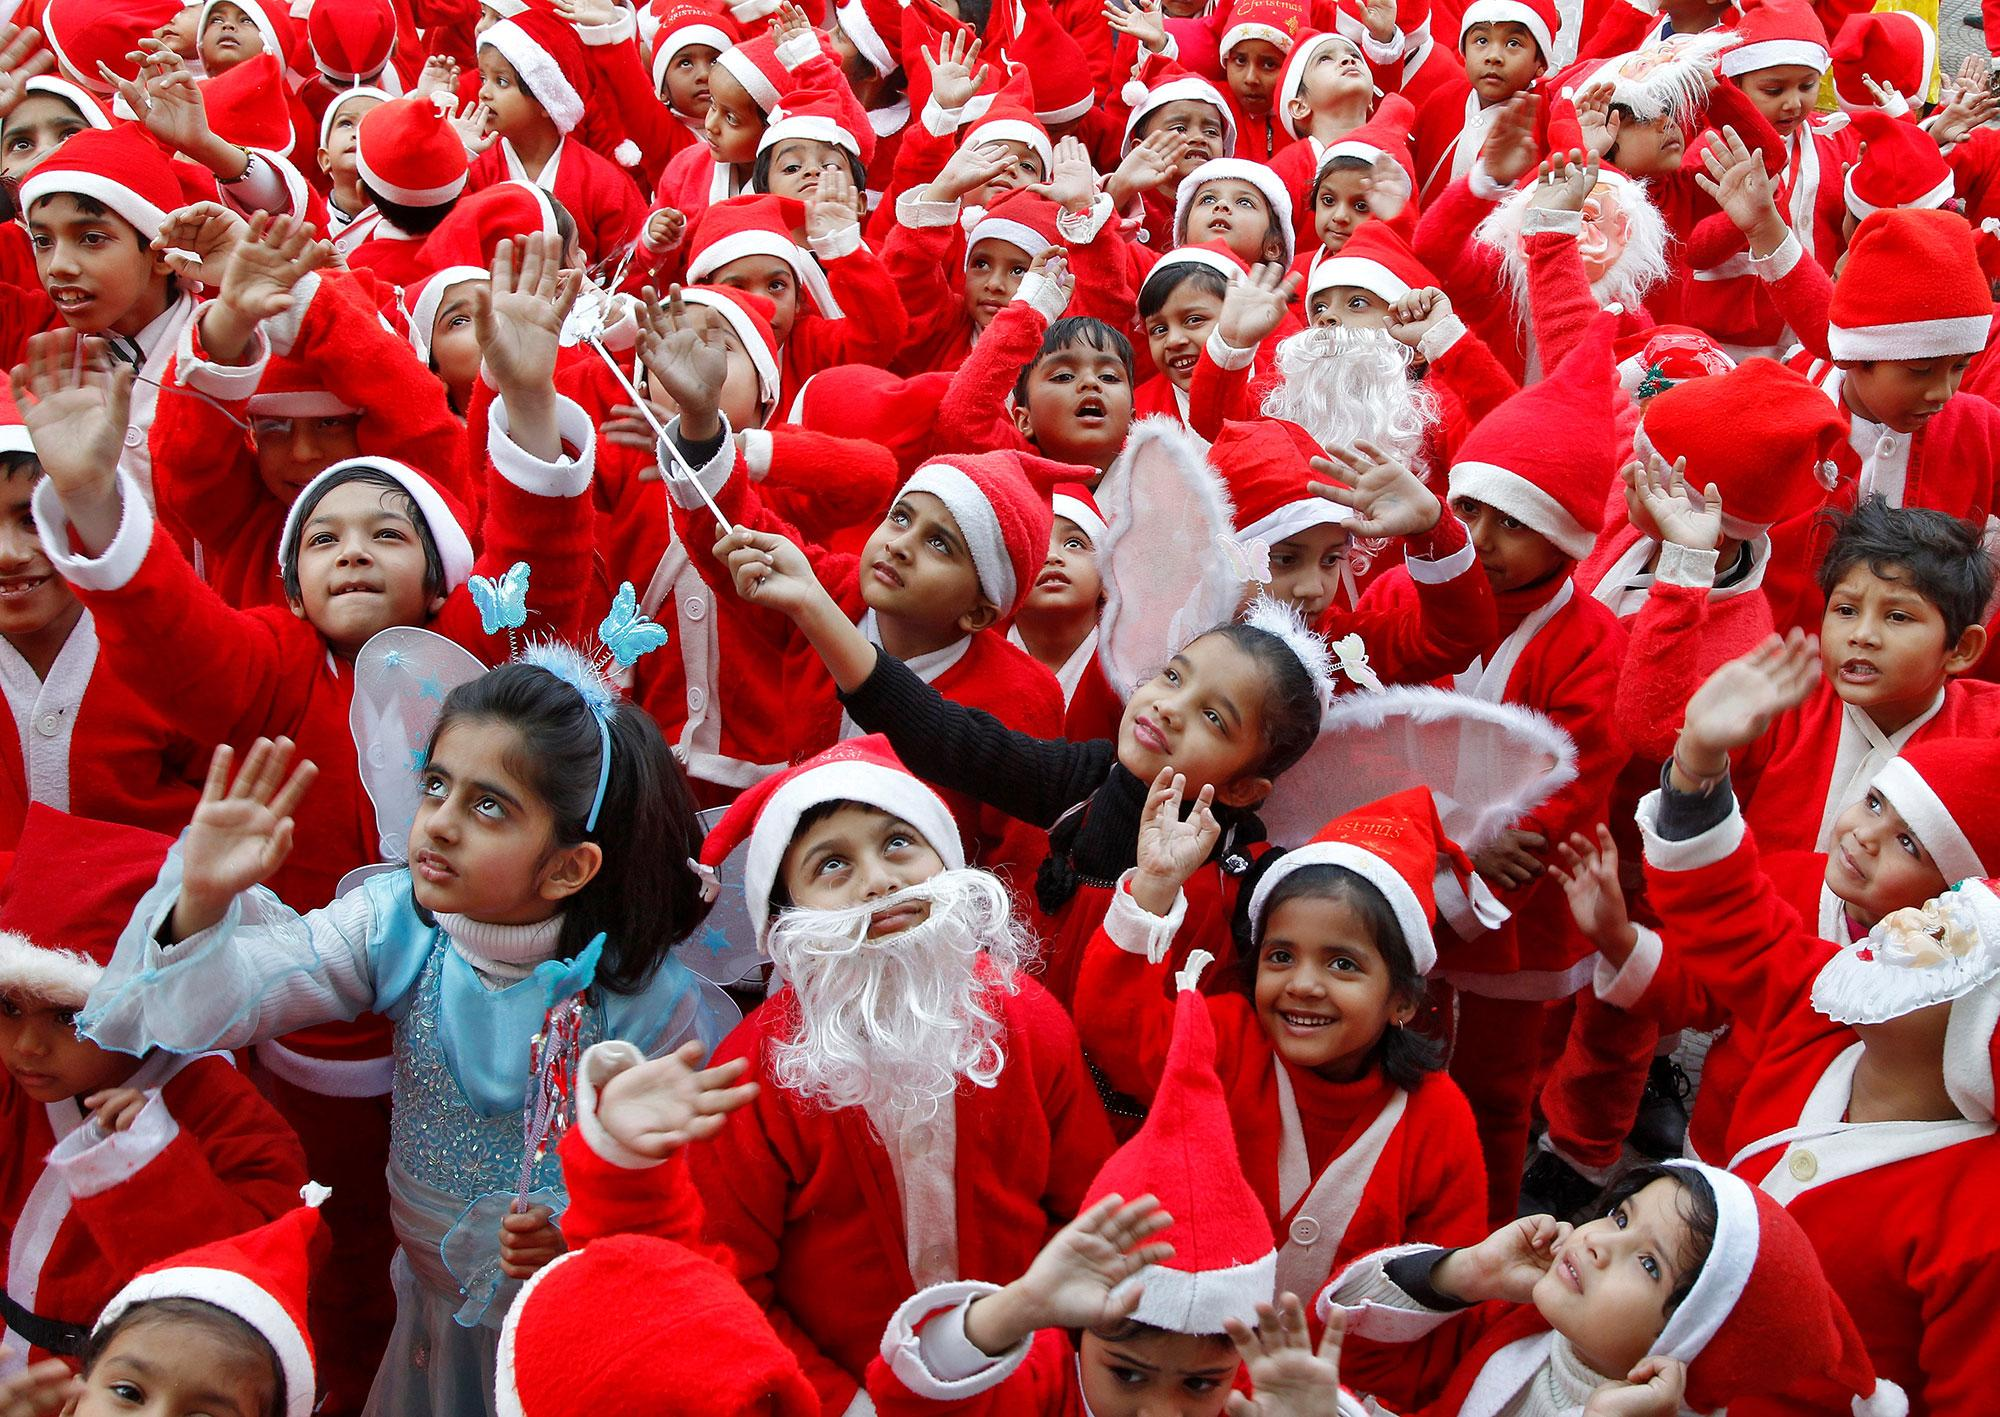 <p>Children dressed in Santa costumes participate in Christmas celebrations at a school in Chandigarh, India on Dec. 24, 2016. (Photo: Ajay Verma/Reuters) </p>